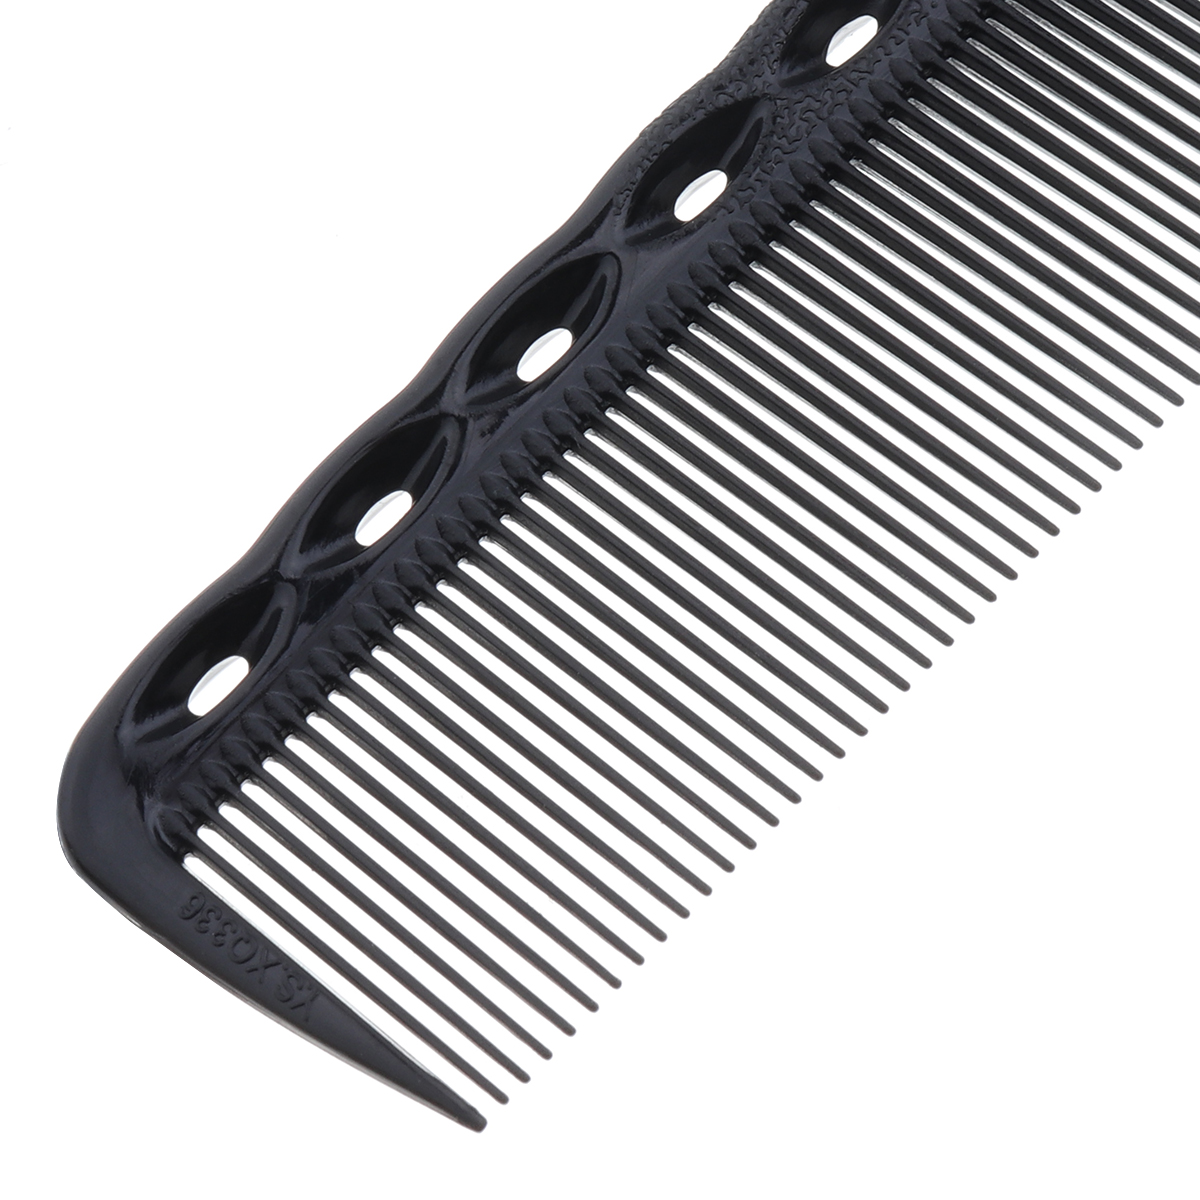 Image 3 - 4 Colors Professional Hair Combs Barber Hairdressing Hair Cutting Brush Anti static Tangle Pro Salon Hair Care Styling Tool-in Combs from Beauty & Health